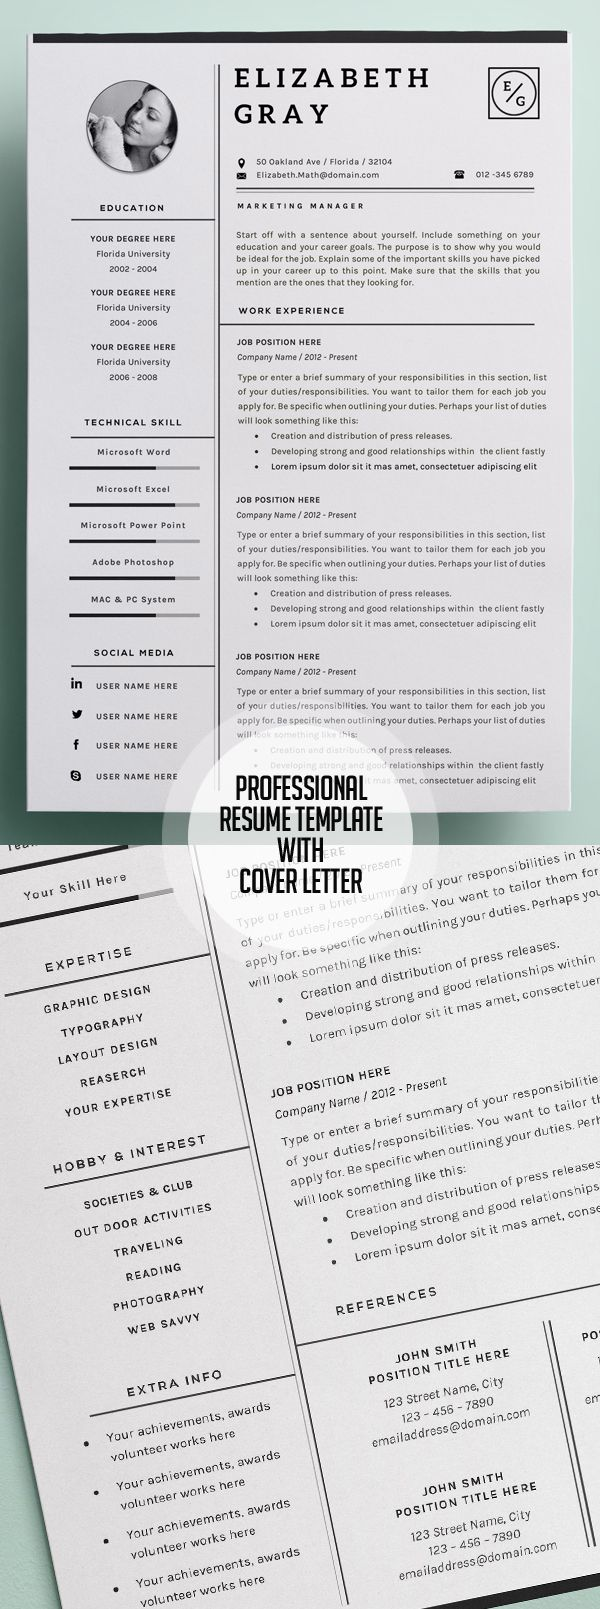 Opposenewapstandardsus  Surprising  Resume Ideas On Pinterest  Resume Resume Templates And  With Exciting Professional And Modern Resume Template With Page Cover Cvtemplate With Comely General Resume Cover Letter Examples Also Basic Resume Layout In Addition Financial Analyst Resume Example And Creative Professional Resumes As Well As Examples Of Cna Resumes Additionally Sample Profile For Resume From Pinterestcom With Opposenewapstandardsus  Exciting  Resume Ideas On Pinterest  Resume Resume Templates And  With Comely Professional And Modern Resume Template With Page Cover Cvtemplate And Surprising General Resume Cover Letter Examples Also Basic Resume Layout In Addition Financial Analyst Resume Example From Pinterestcom